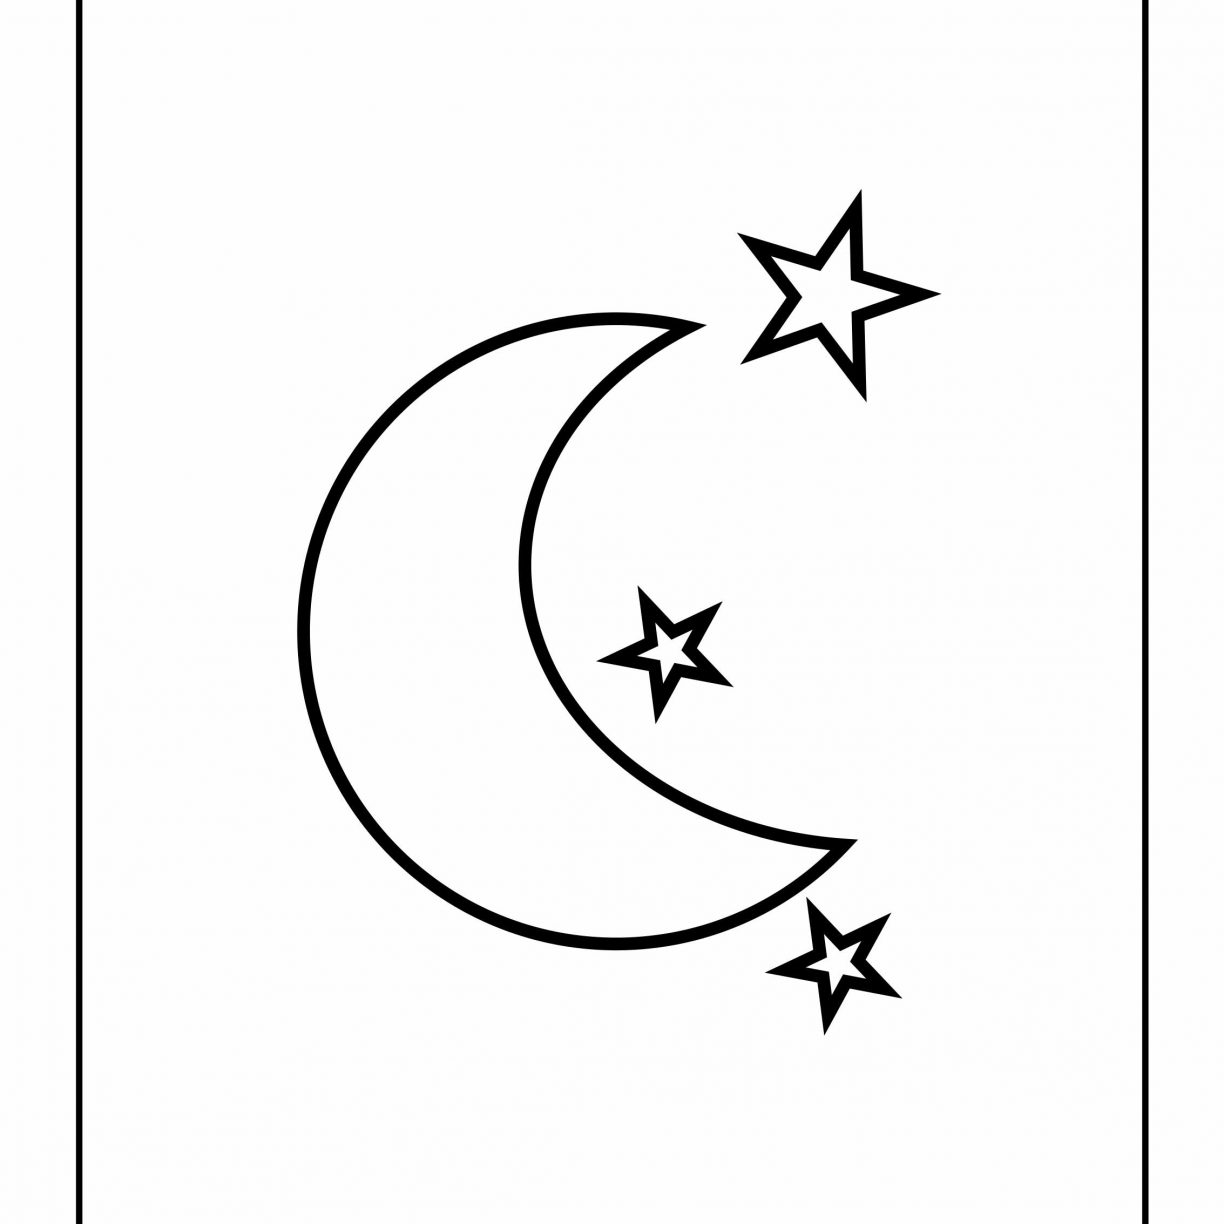 1224x1224 Sun And Moon Coloring Pages Free Stars Printable Kids For Adults